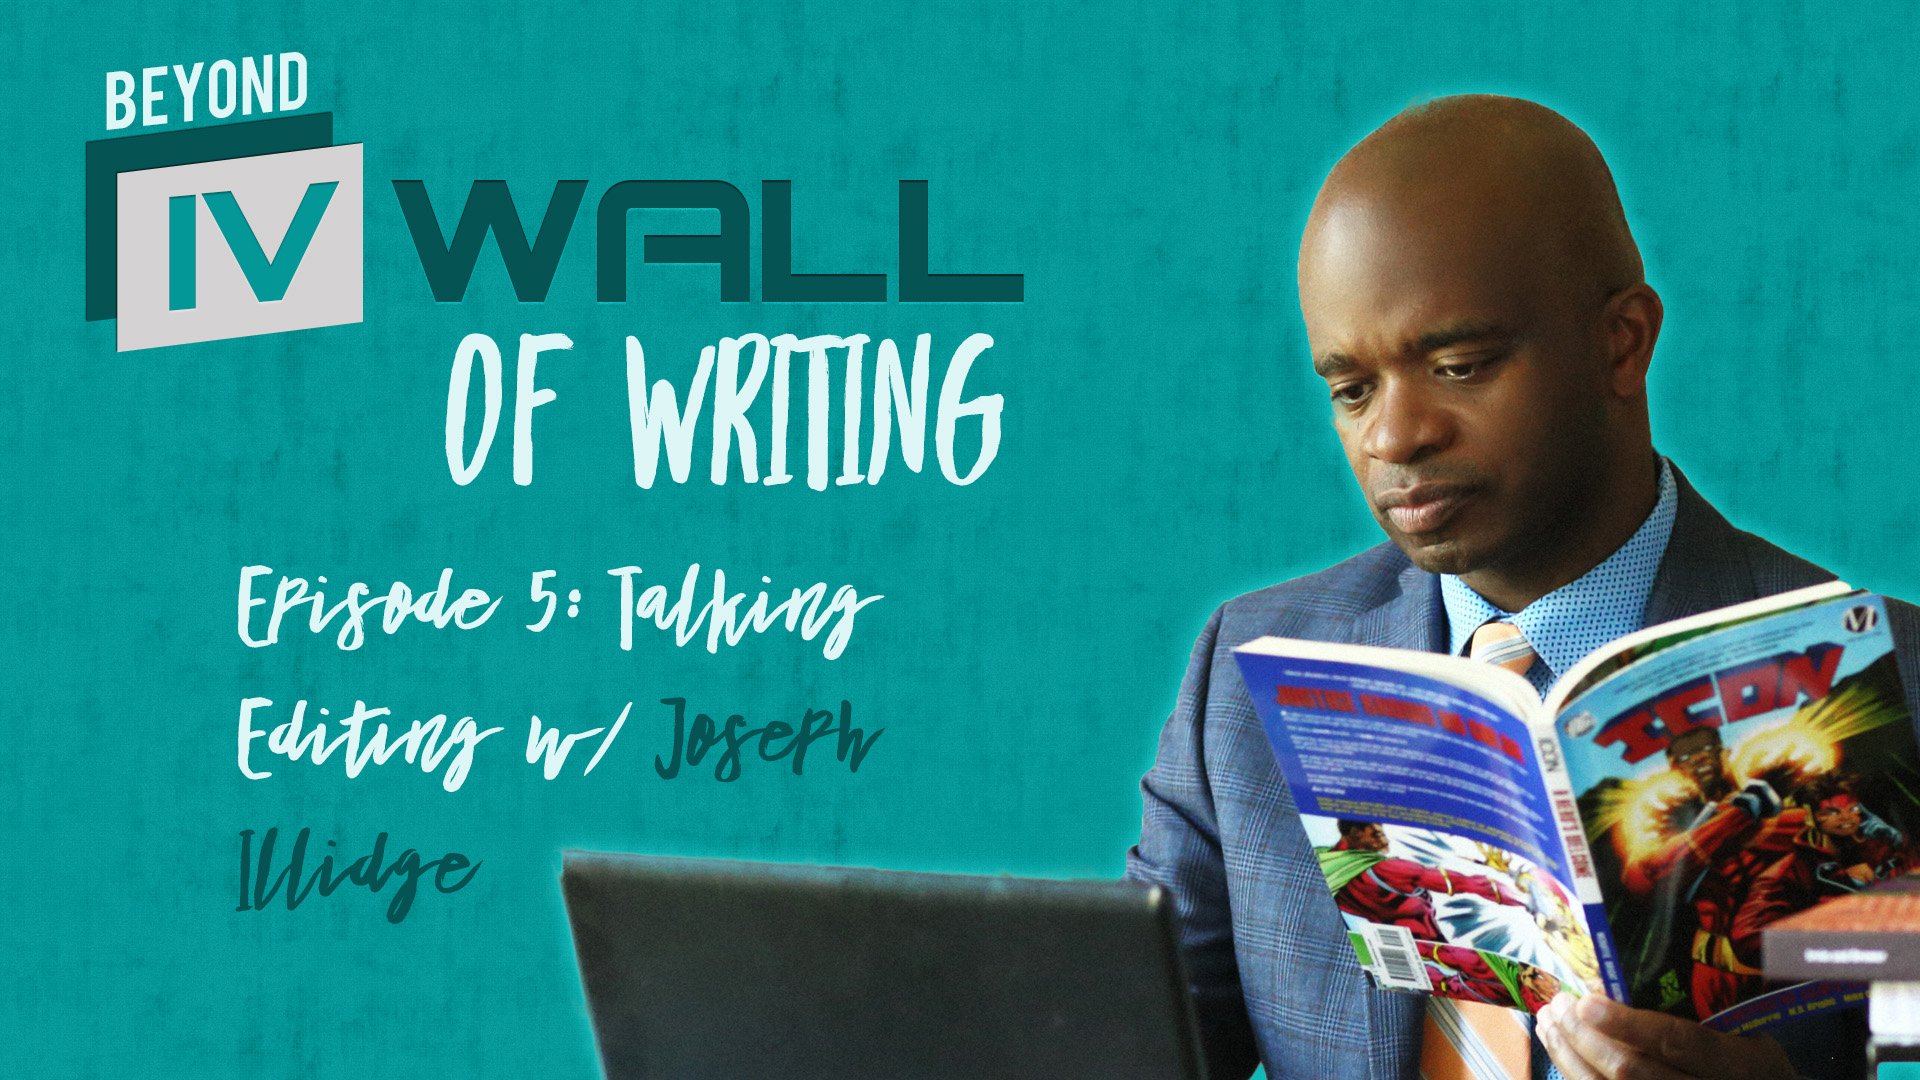 Beyond the IVWall of Writing: Episode 5- Talking Editing with Joseph P. Illidge